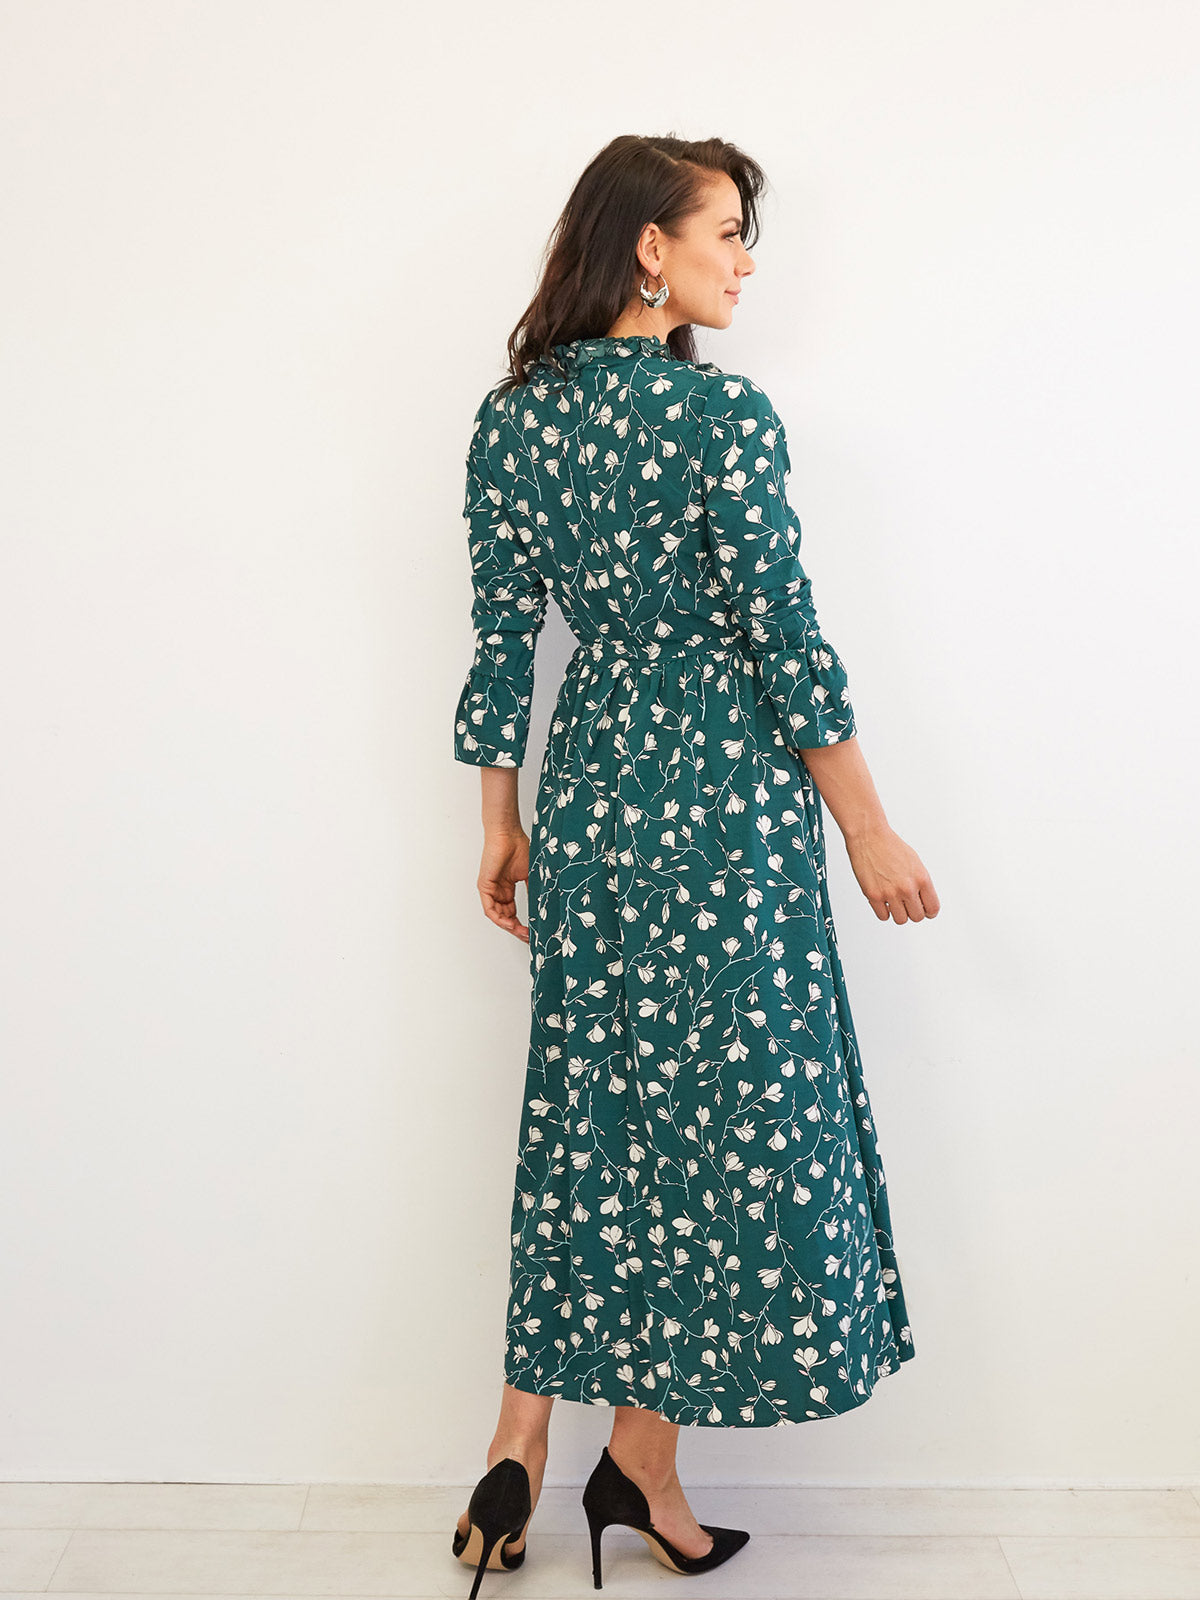 DAYS AT THE CHATEAU FLORAL DRESS IN GREEN